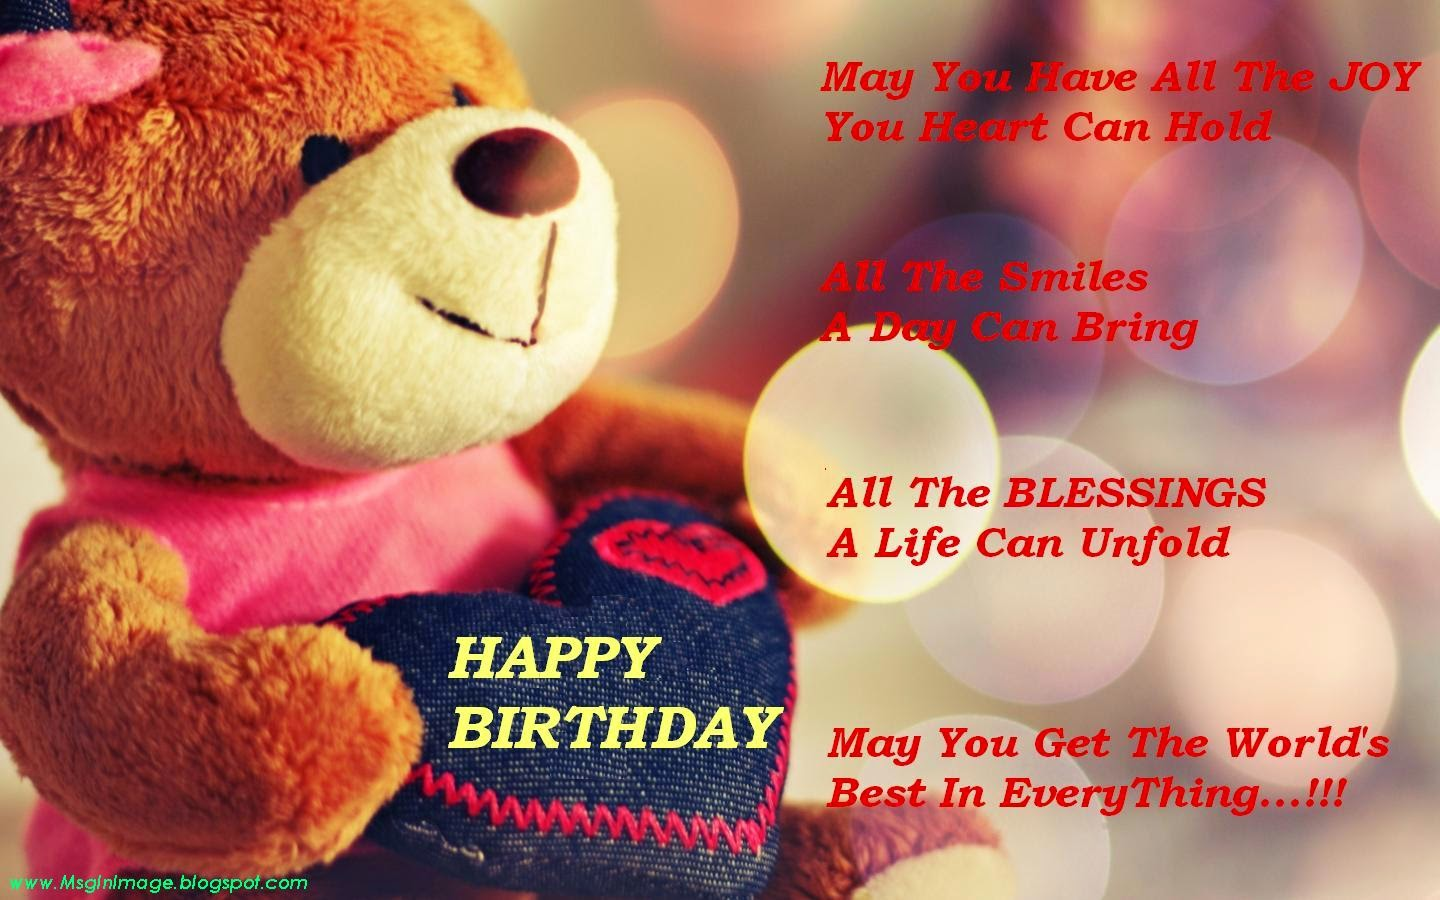 Best All In One Quotes: Happy Birthday Quotes And Wishes For ...